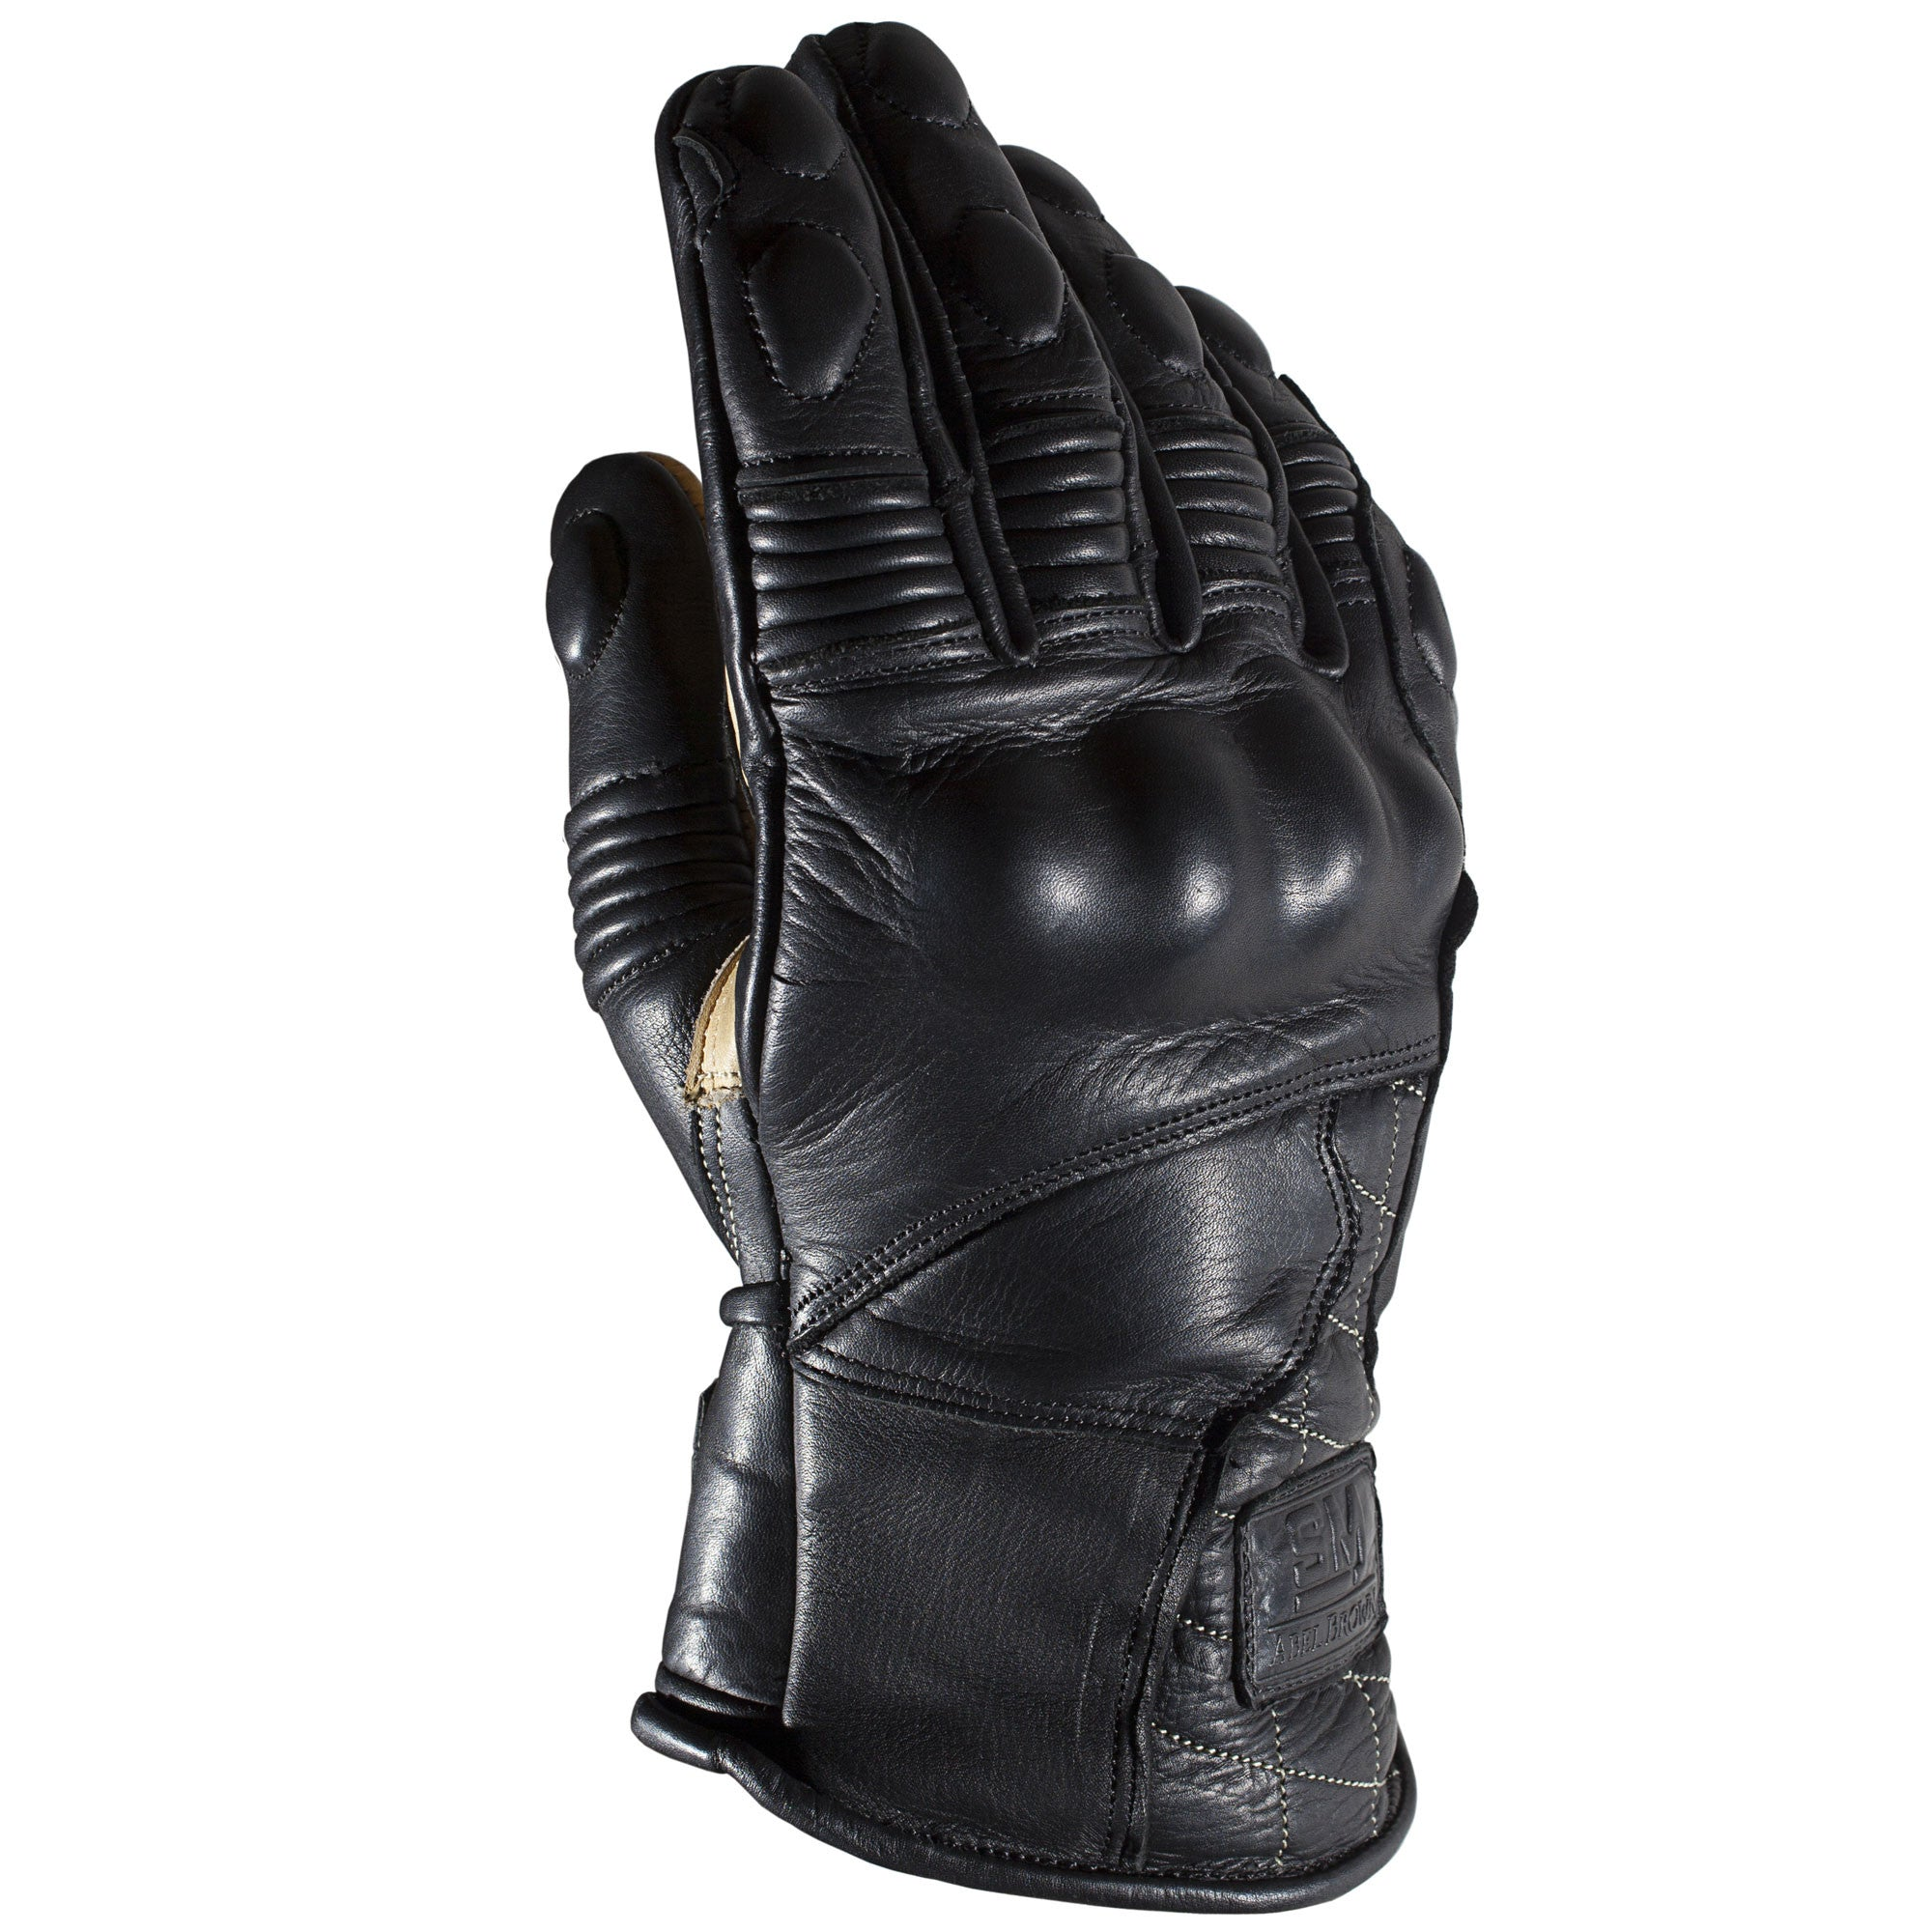 Speed Merchant x Abel Brown Collab Glove - Abel Brown